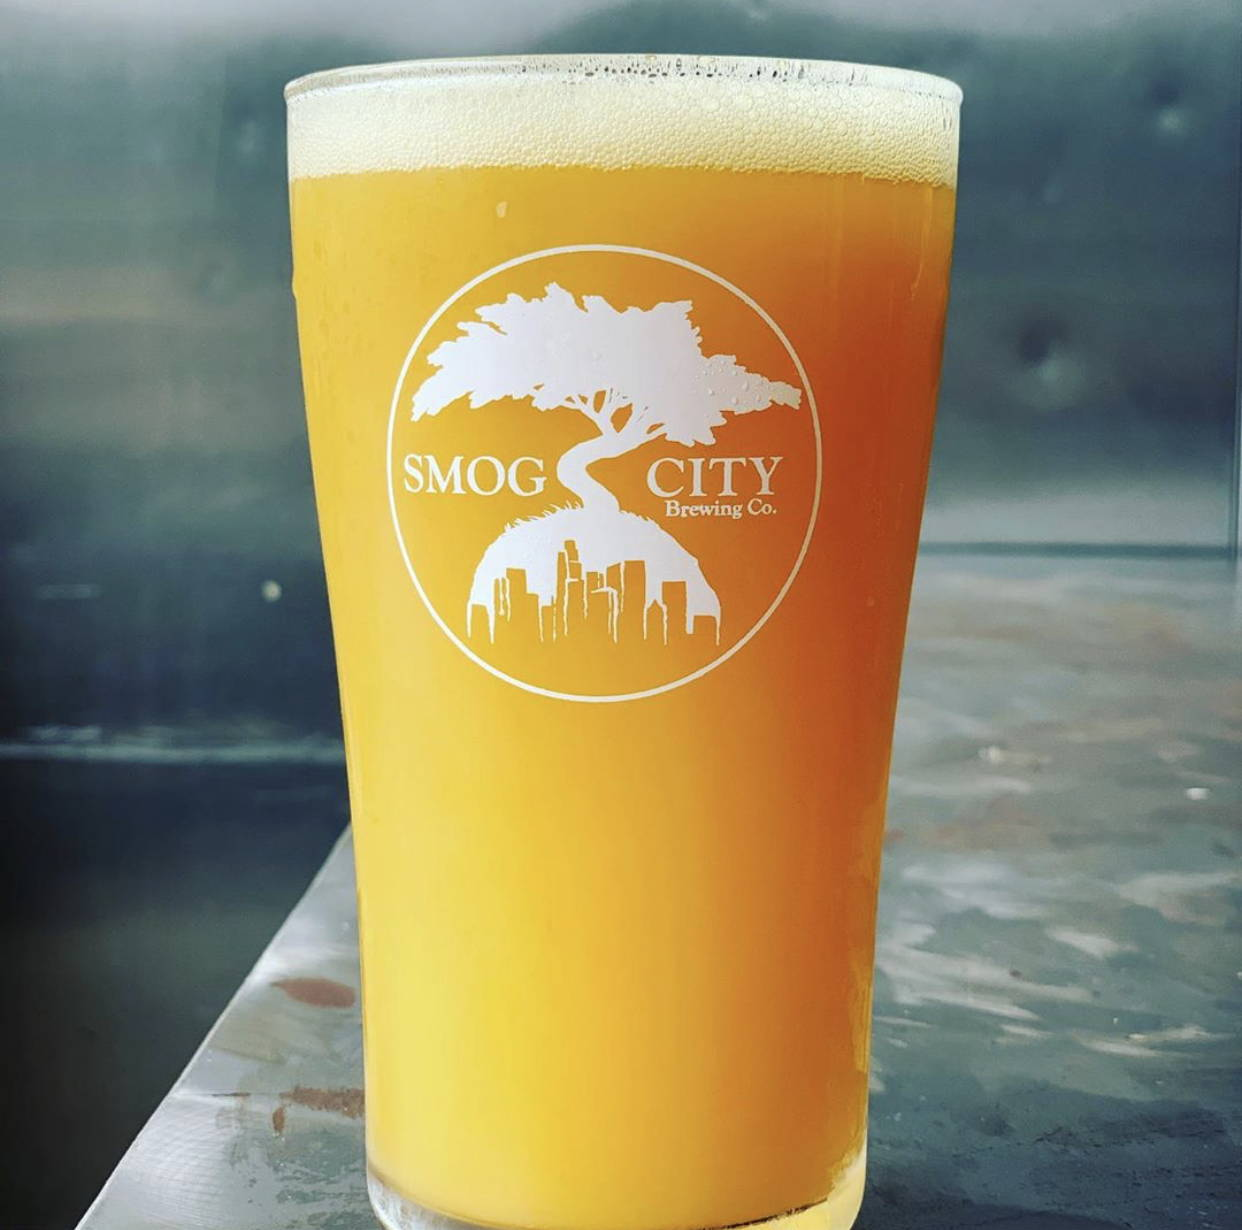 a pint glass of hazy ipa is seen with the smog city logo. it is sitting on a wooden bar.